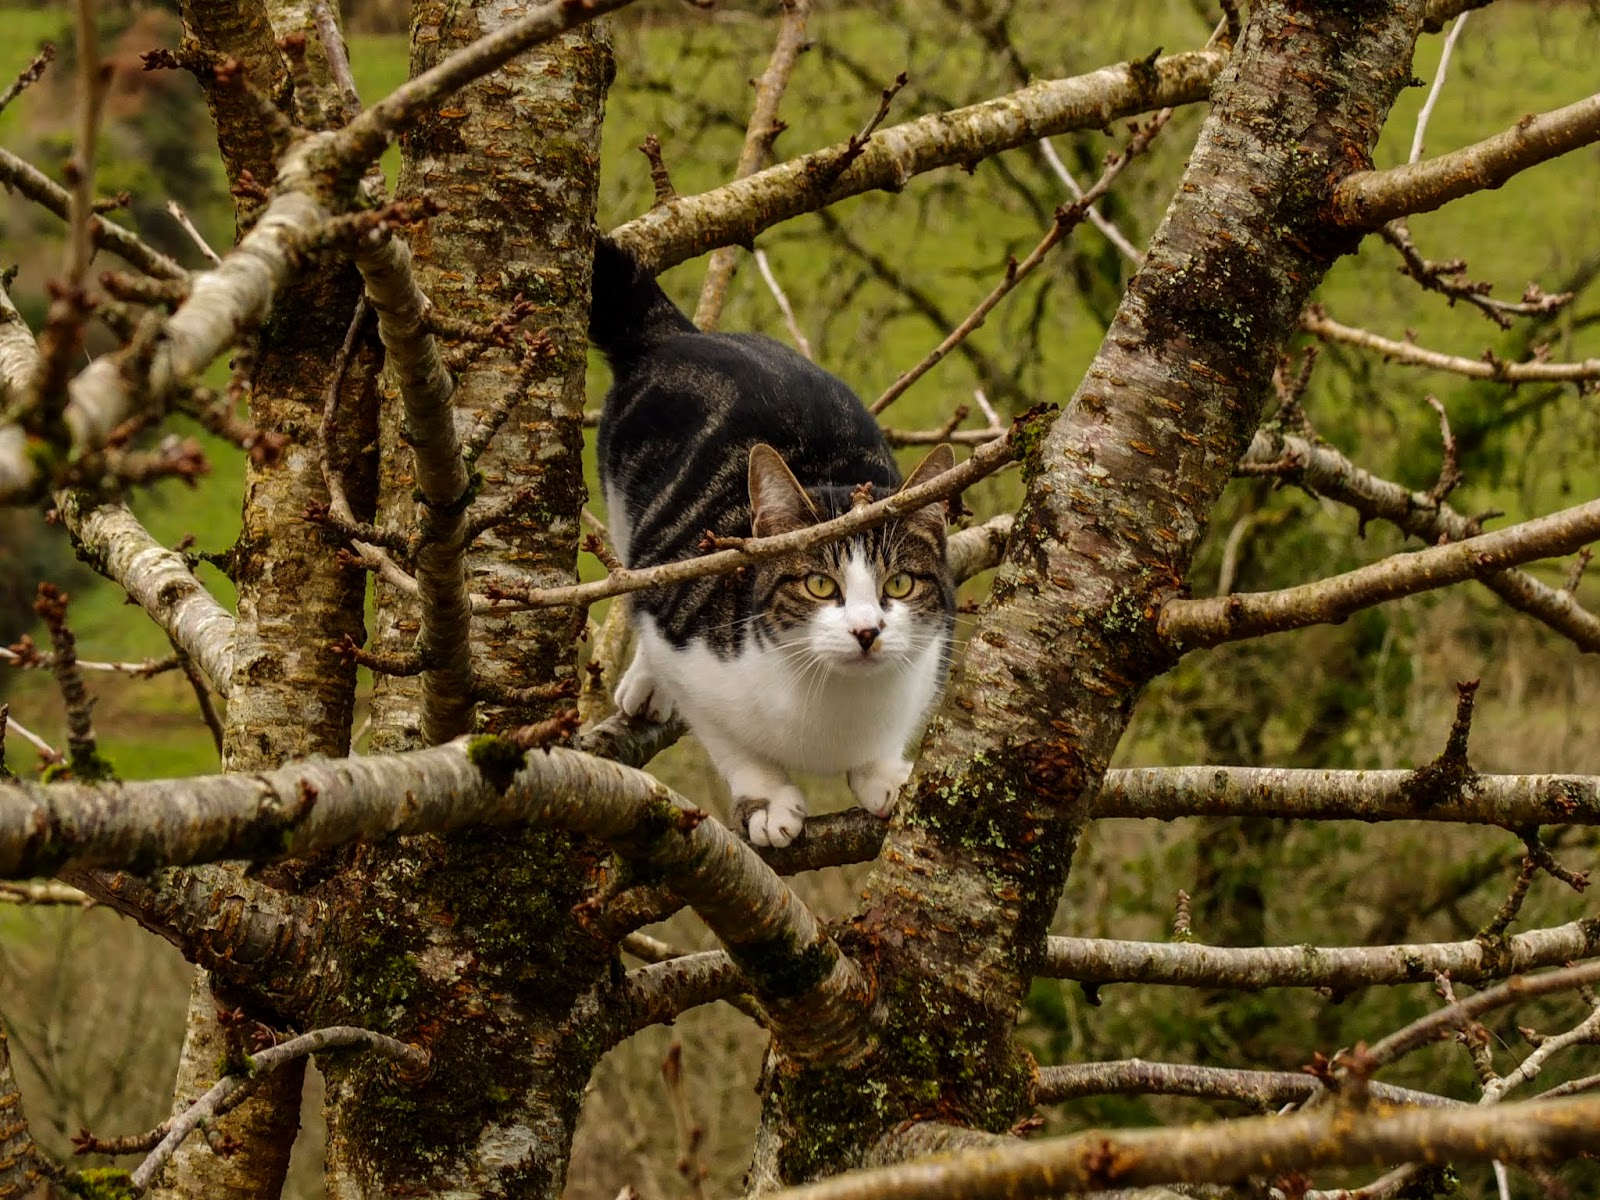 A cat sitting inside a bare cherry tree.